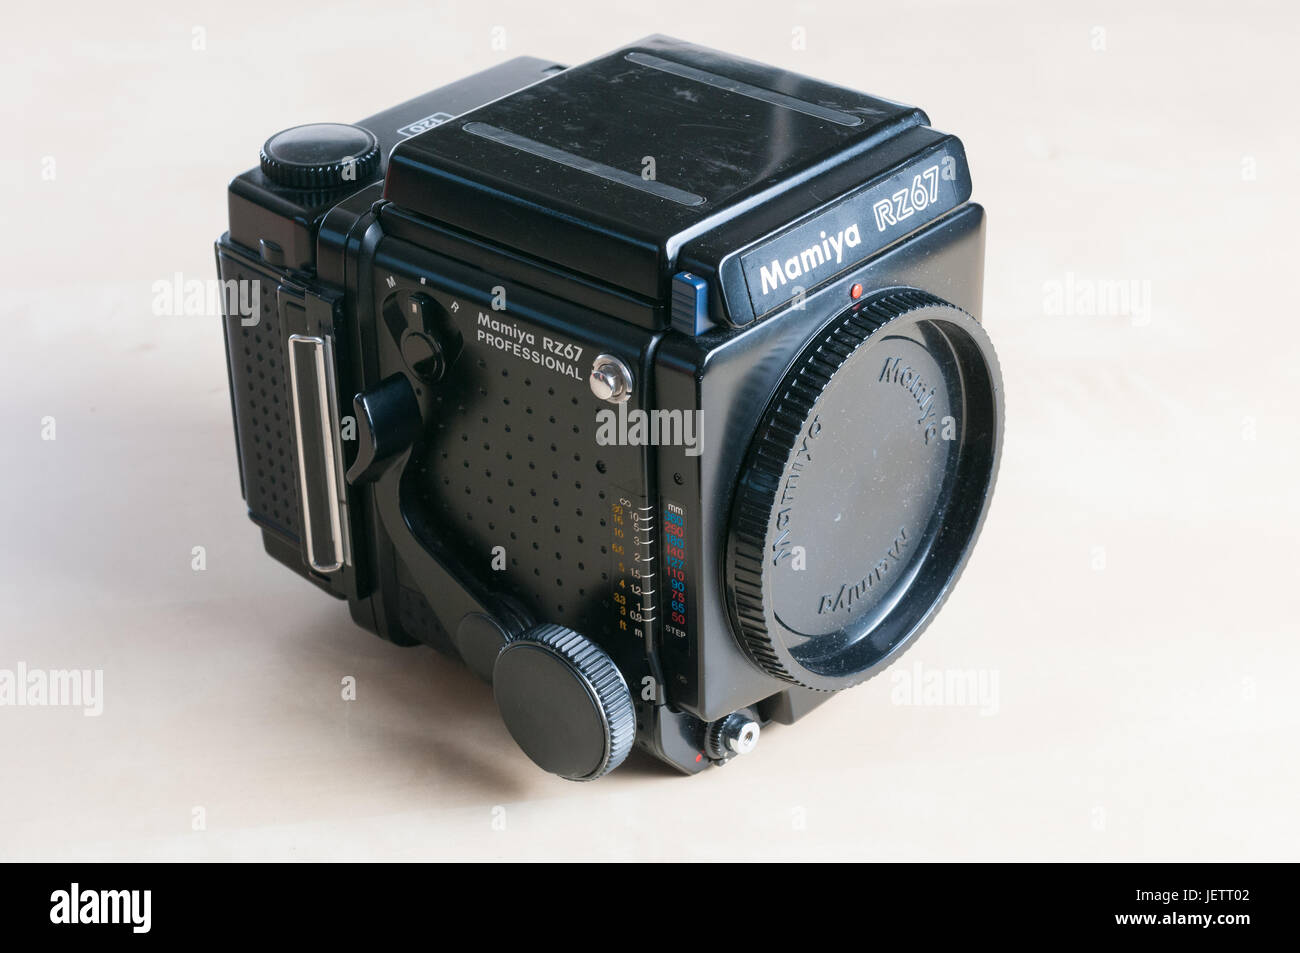 Mamiya RZ67 Medium Format Film Camera Stock Photo: 146833794 - Alamy